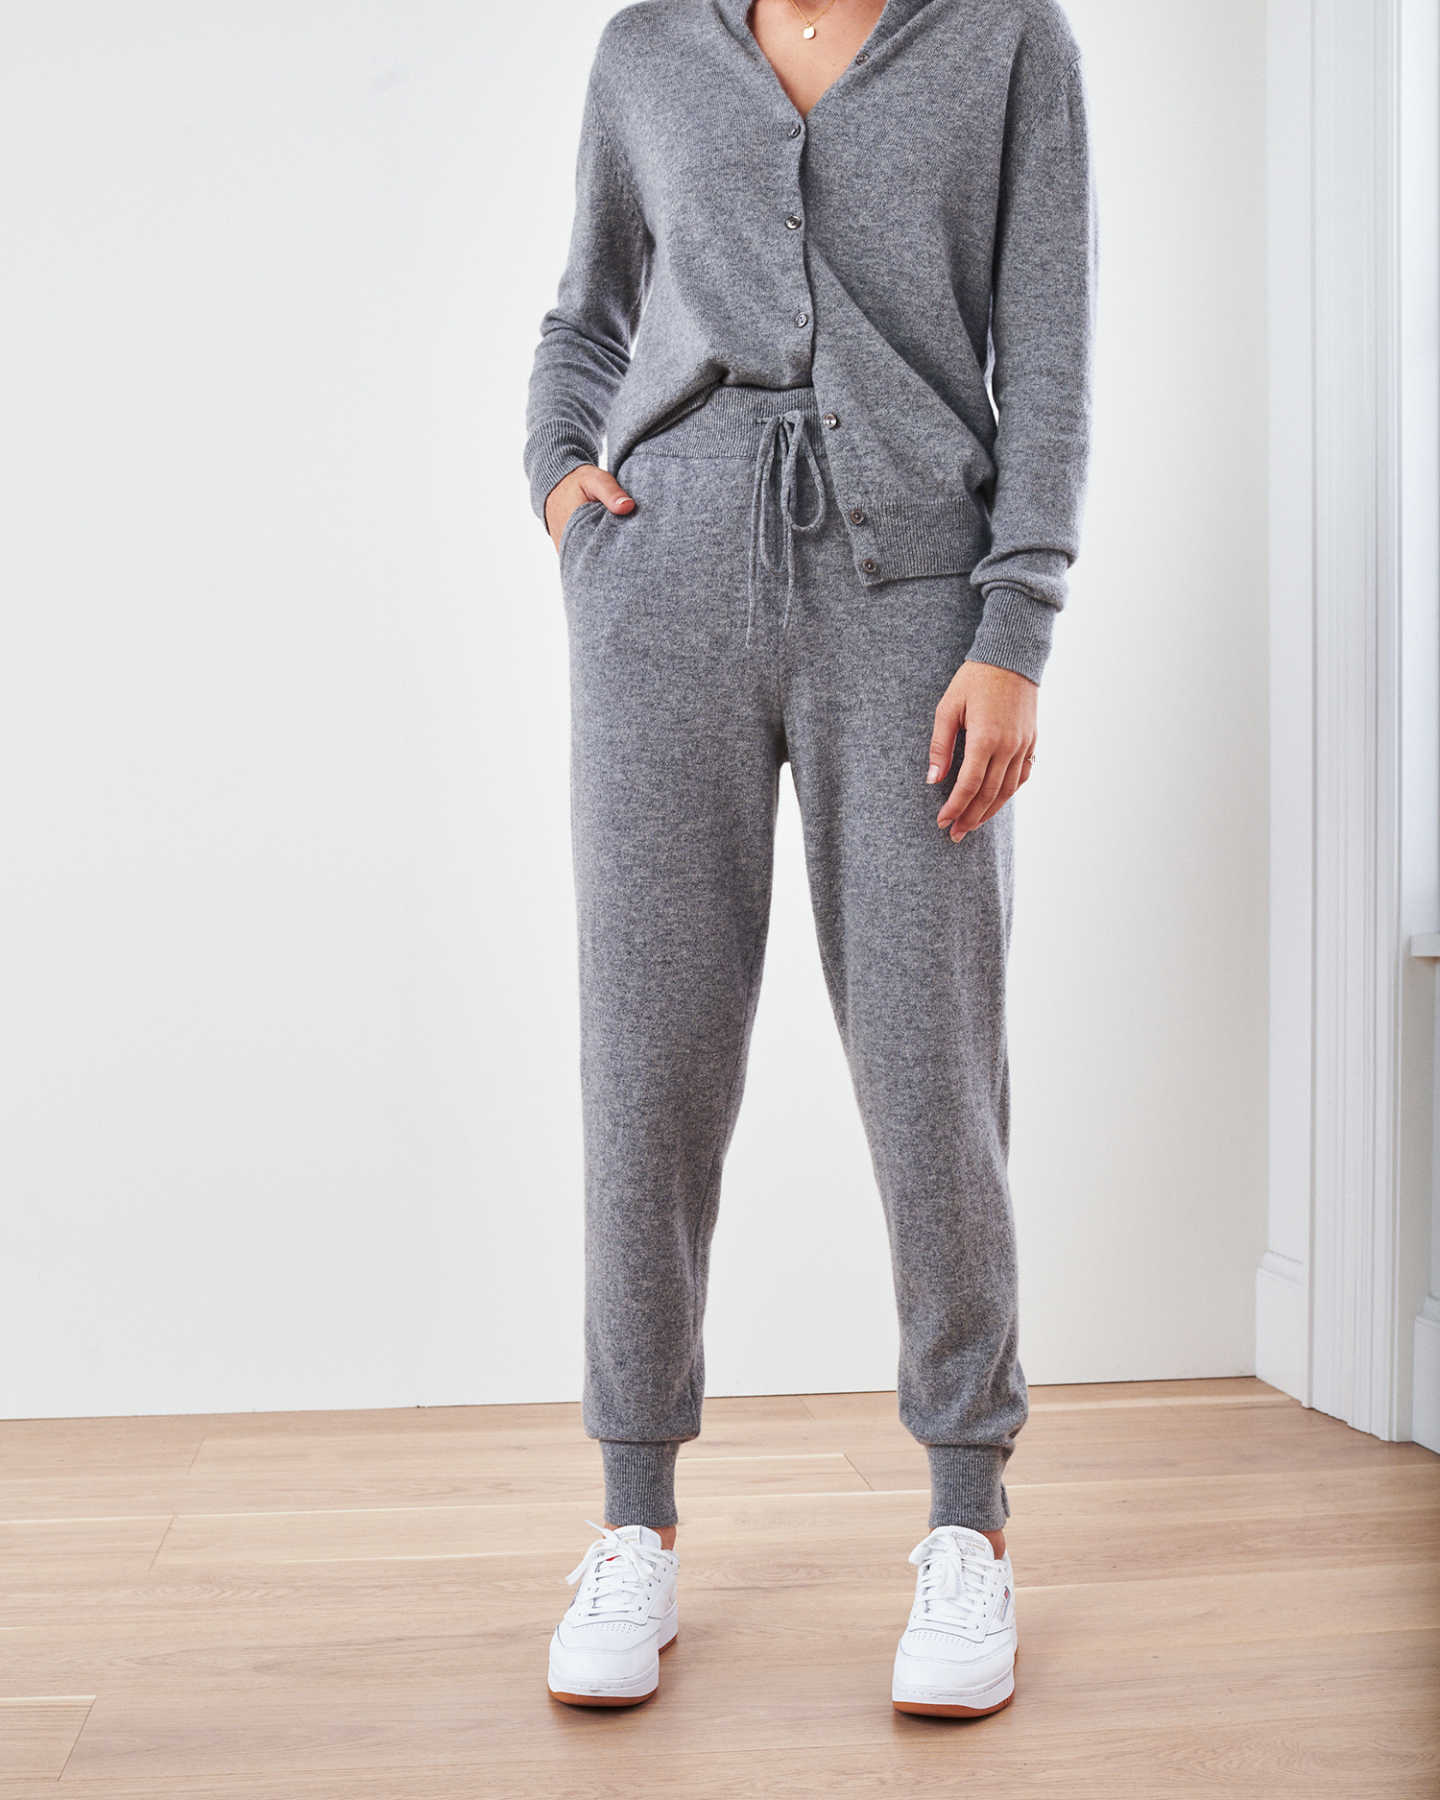 Mongolian Cashmere Sweatpants - Heather Grey